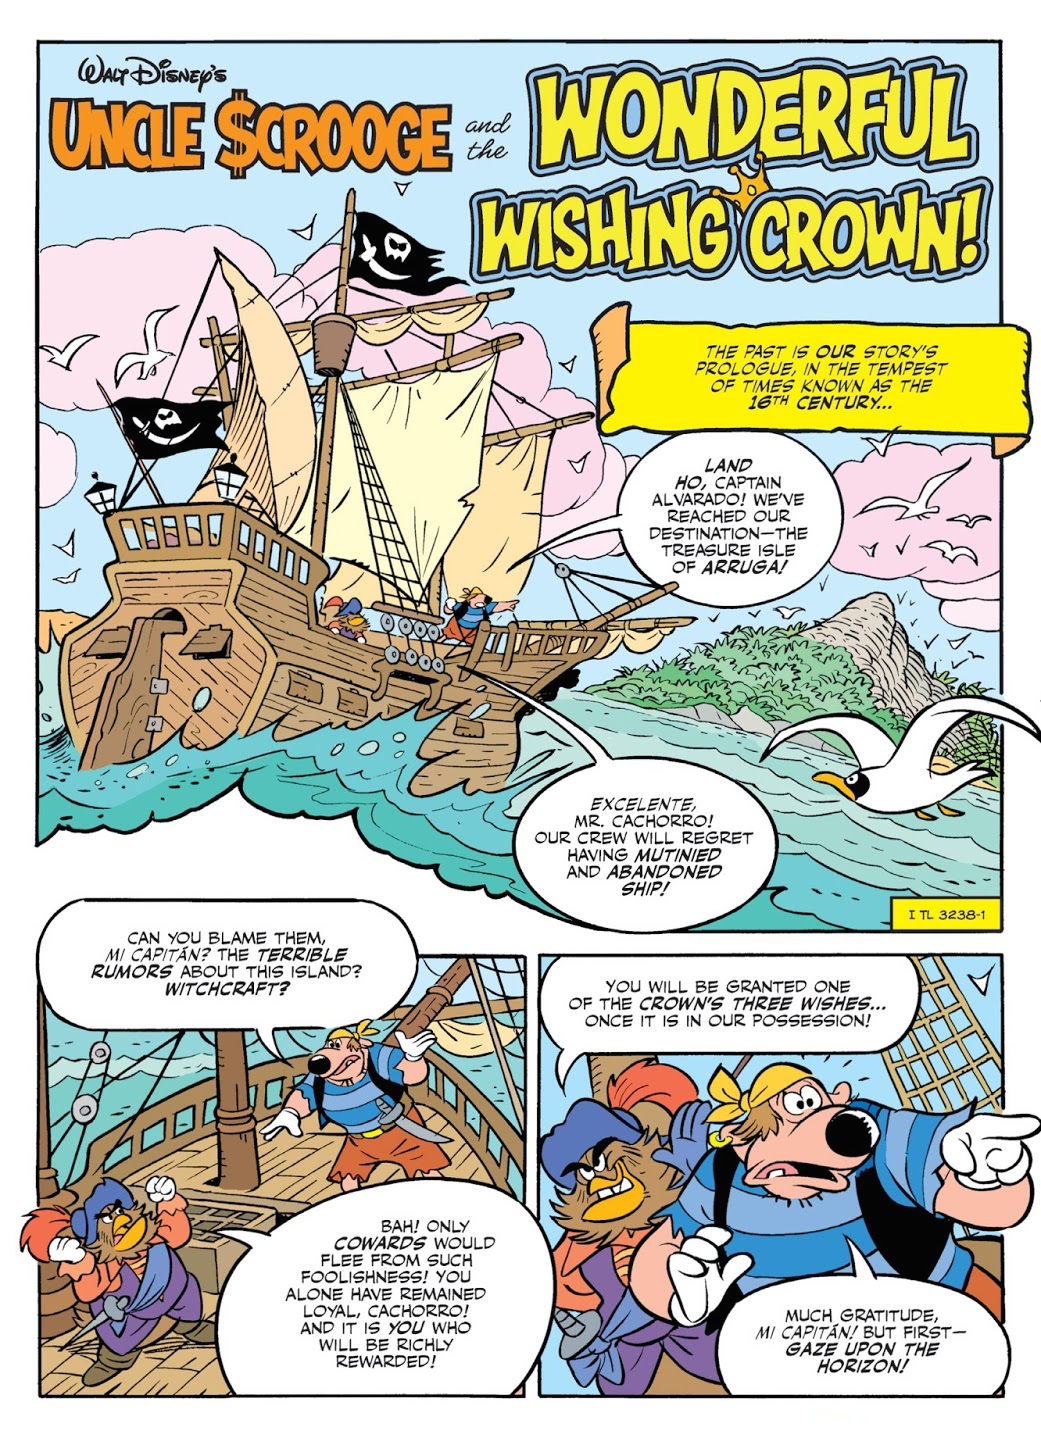 Uncle Scrooge and the Wonderful Wishing Crown!